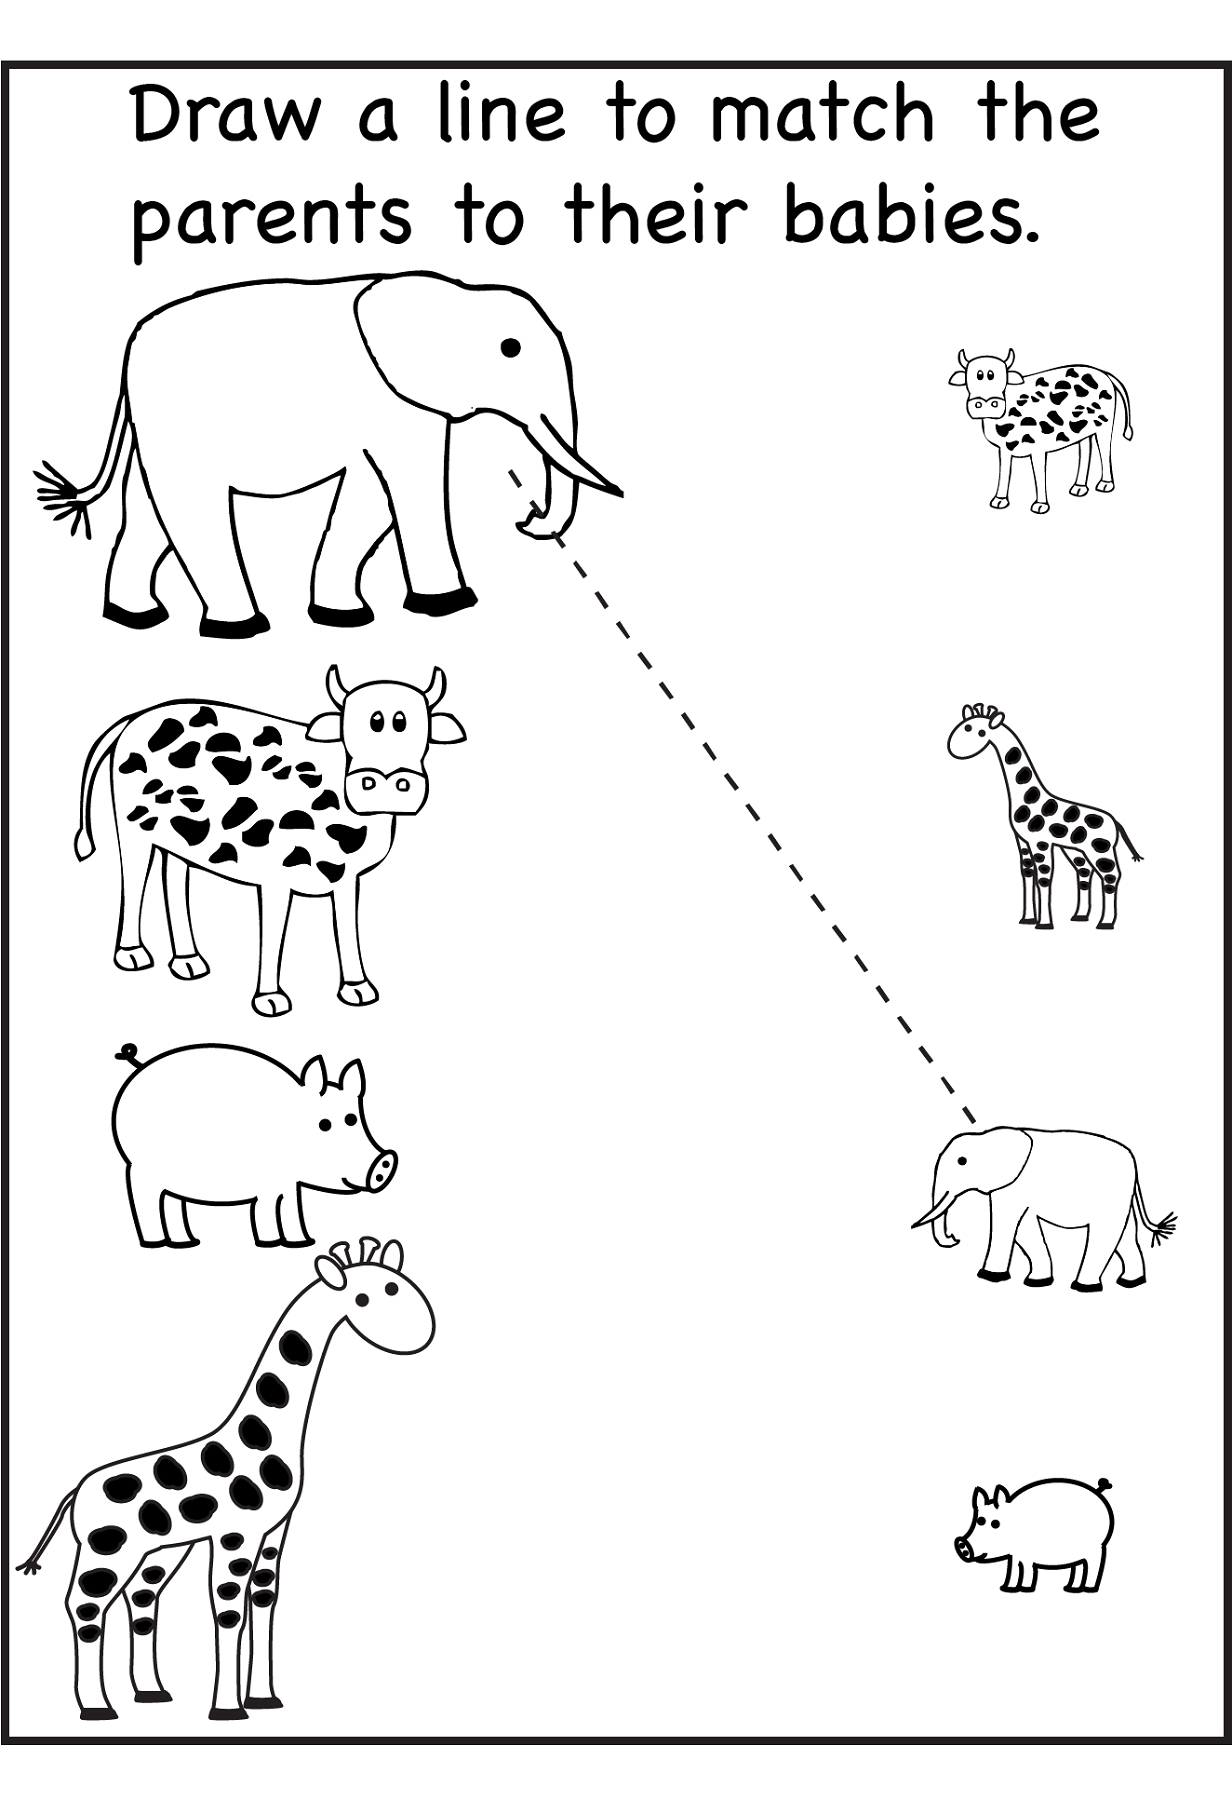 Printable Activity Sheets For Kids | Kids Worksheets Printable - Free Printable Activities For Preschoolers